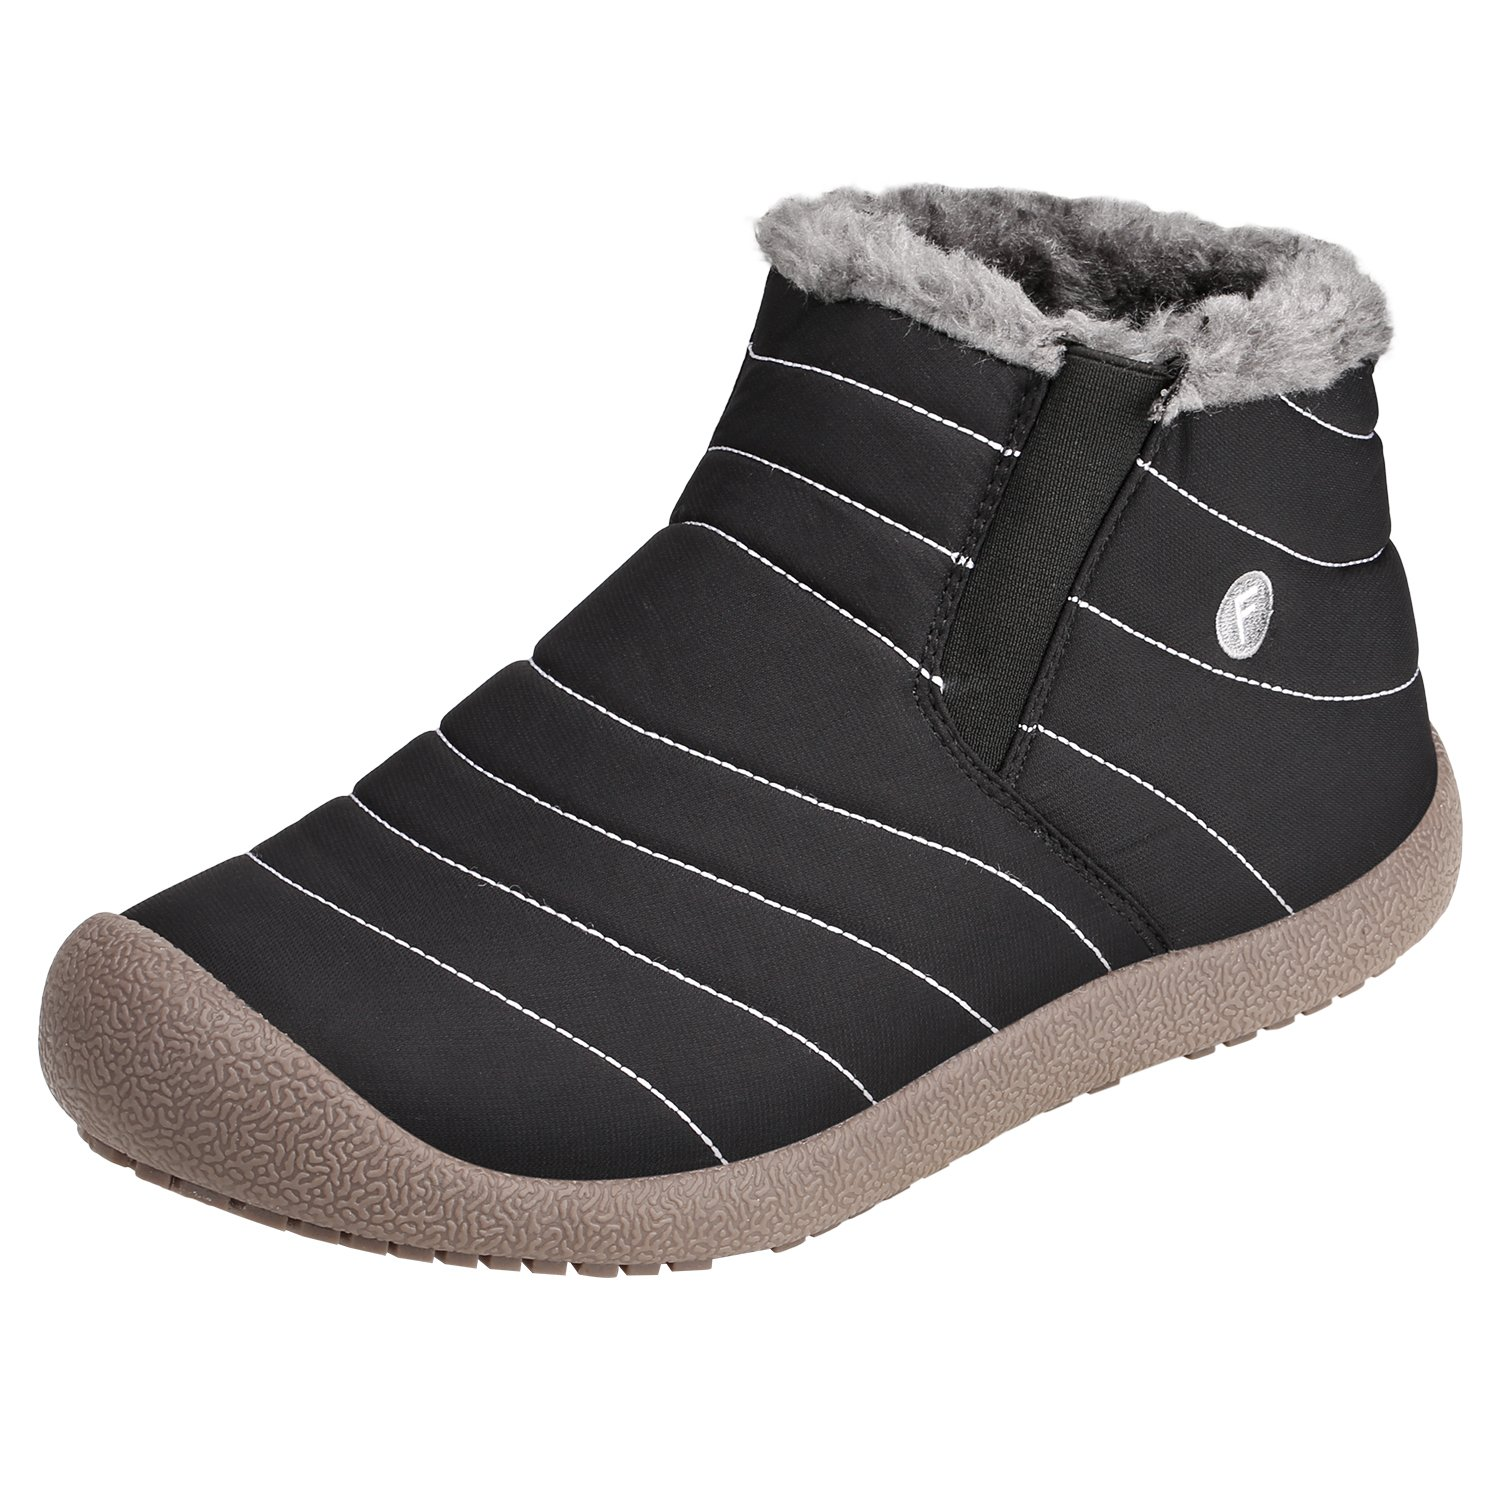 SANMIO Warm Snow Boots, Winter Fur Lining Ankle Boots, Thickening Winter Outdoor Slip On Flats Shoes (Black,Lable 42)